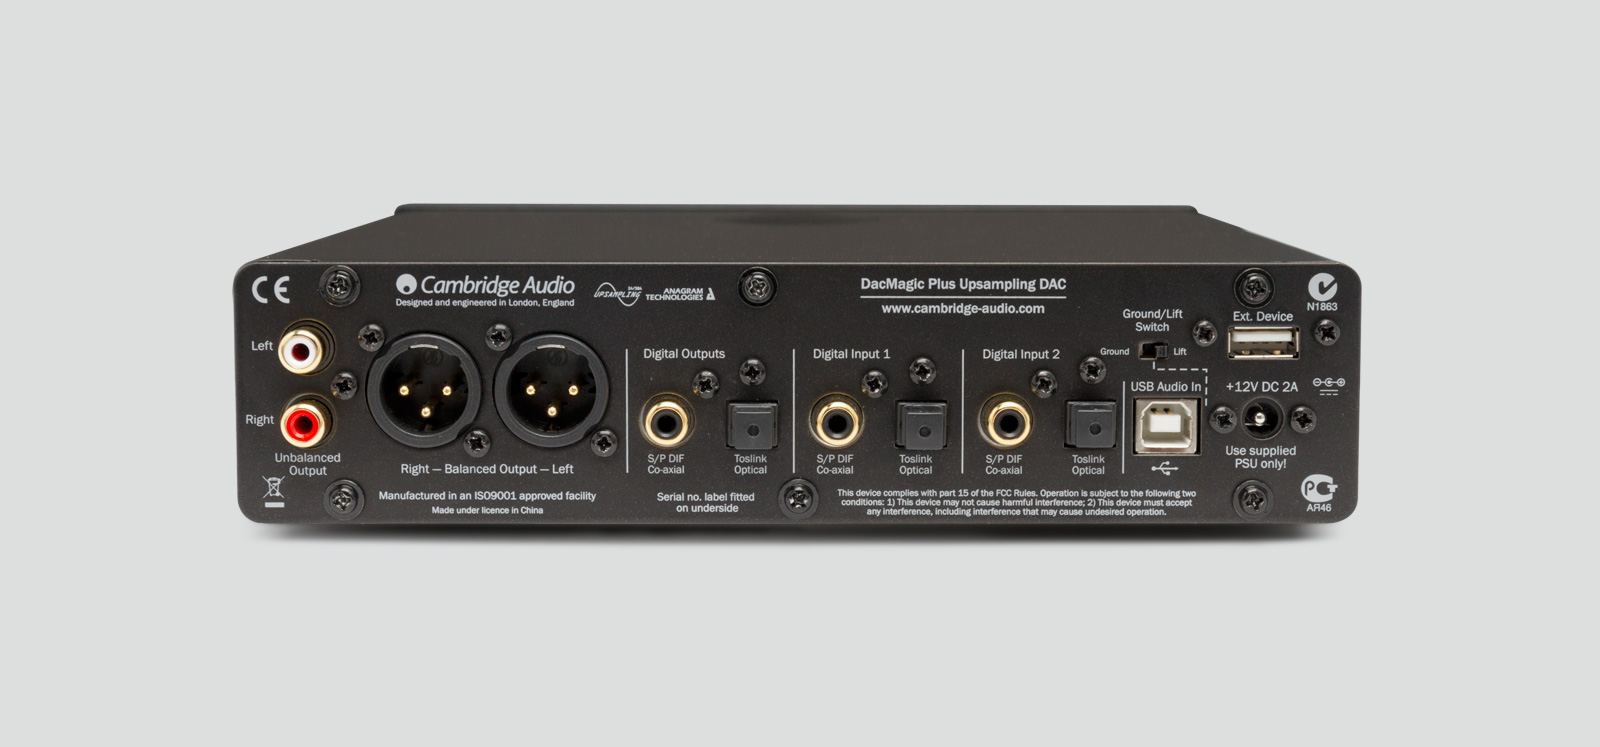 dacmagic plus digital to analogue converter preamplifier rh cambridgeaudio com cambridge audio dacmagic manual pdf cambridge audio dacmagic manual pdf